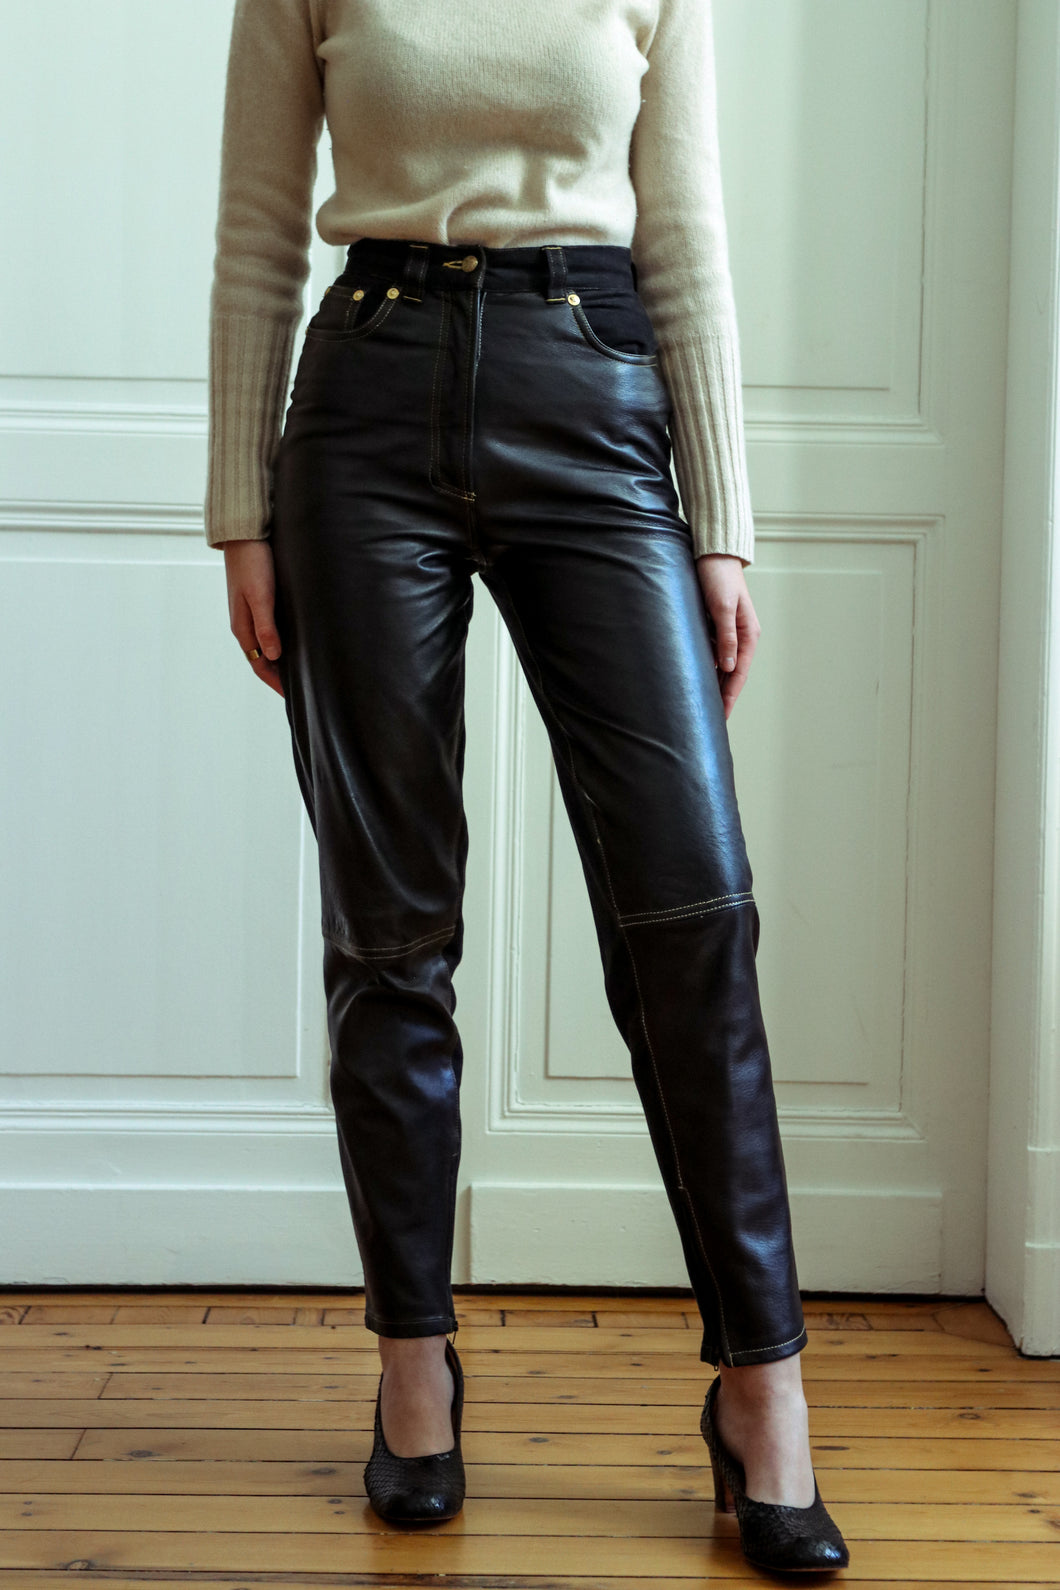 Gianni Versace Leather Pants